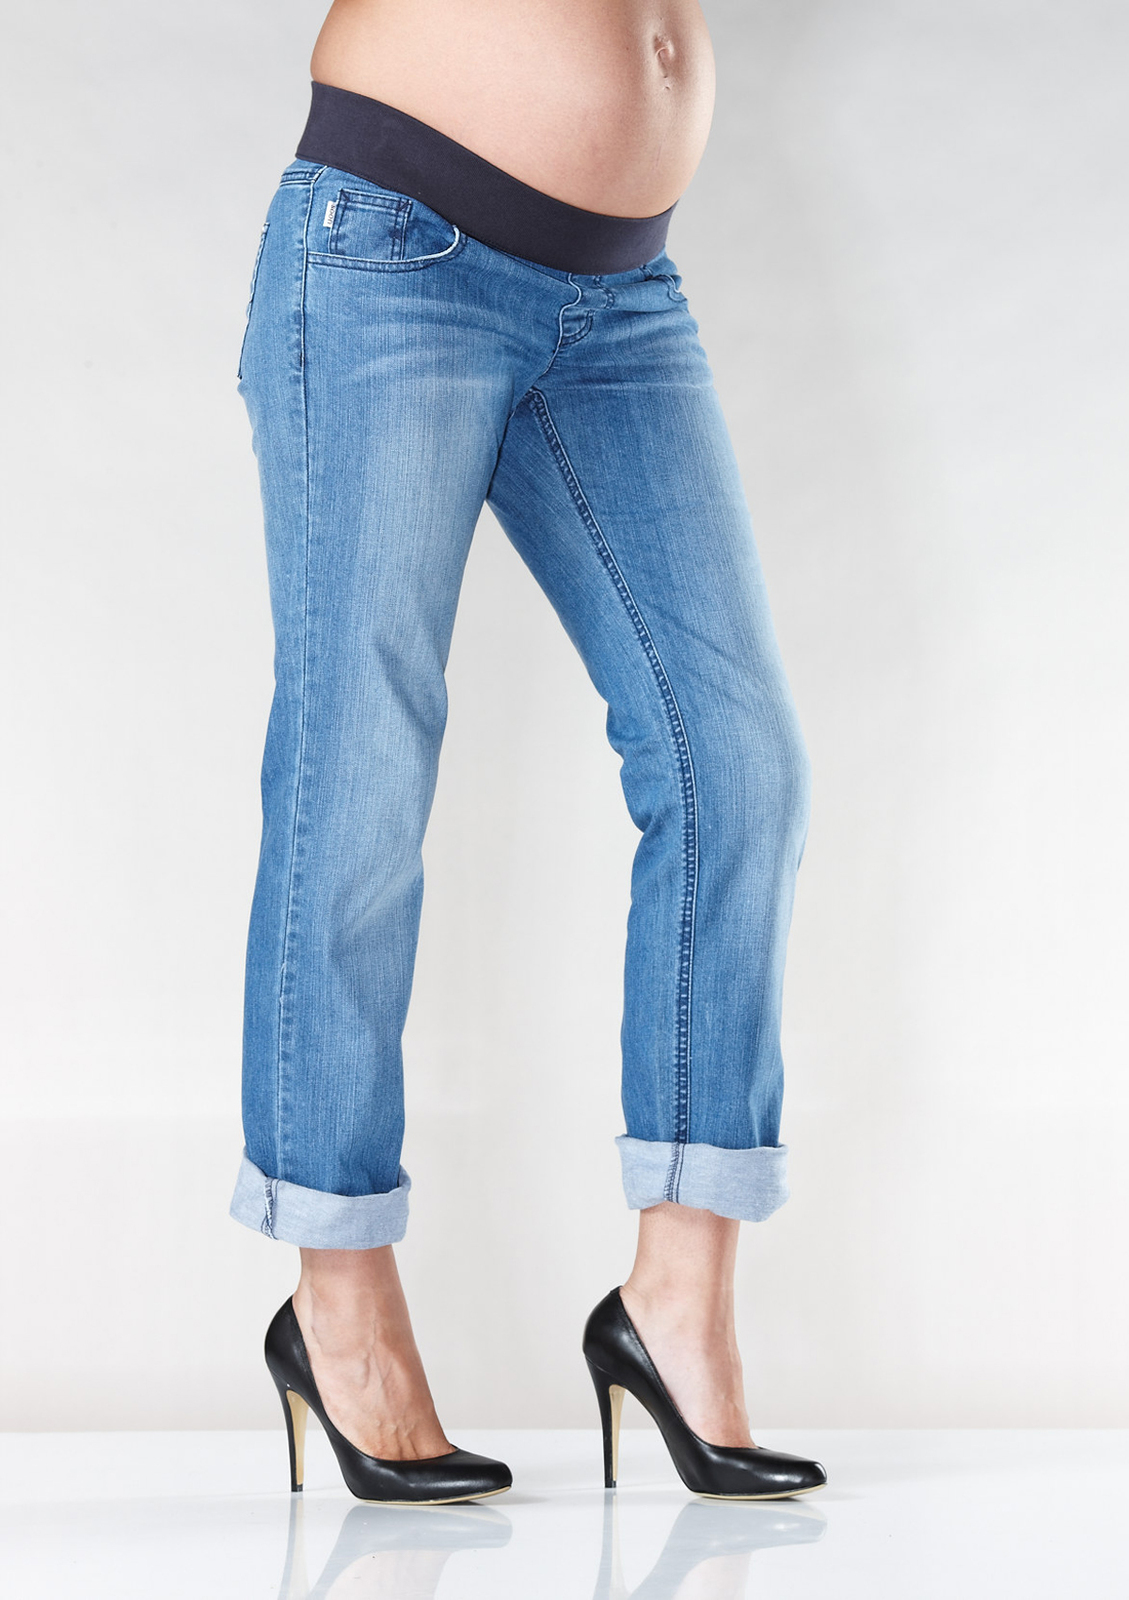 Jeans For Men For Women Texture Jacket For Girls Pant and Heels ...